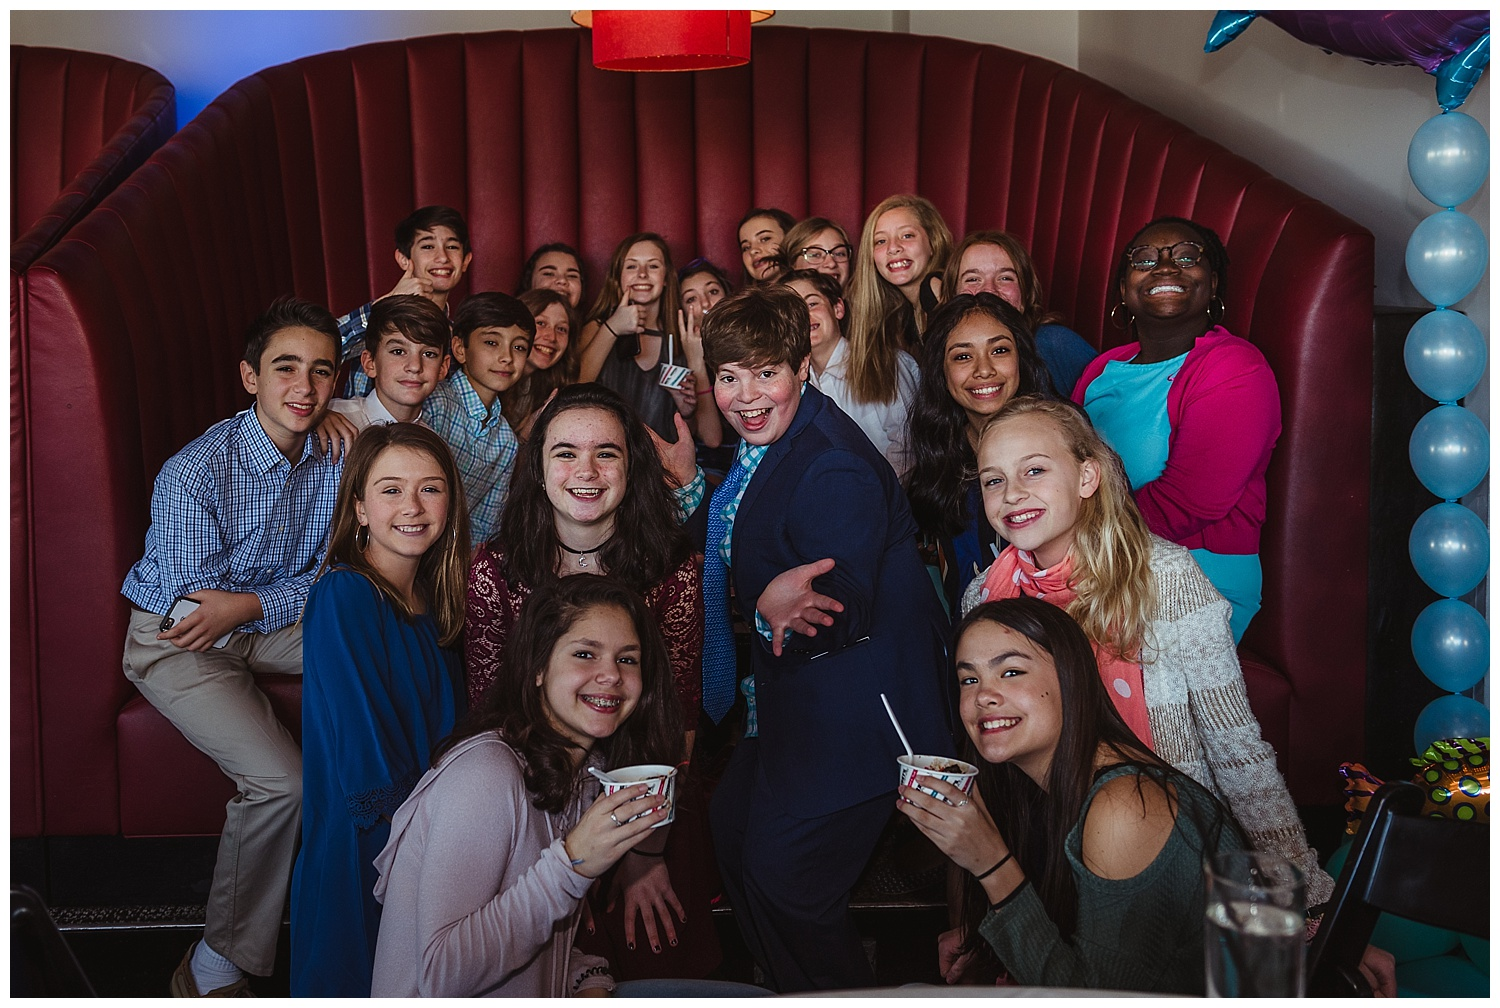 The mitzvah boy and his friends pose for the camera during his mitzvah celebration at Solas nightclub in downtown Raleigh, NC.